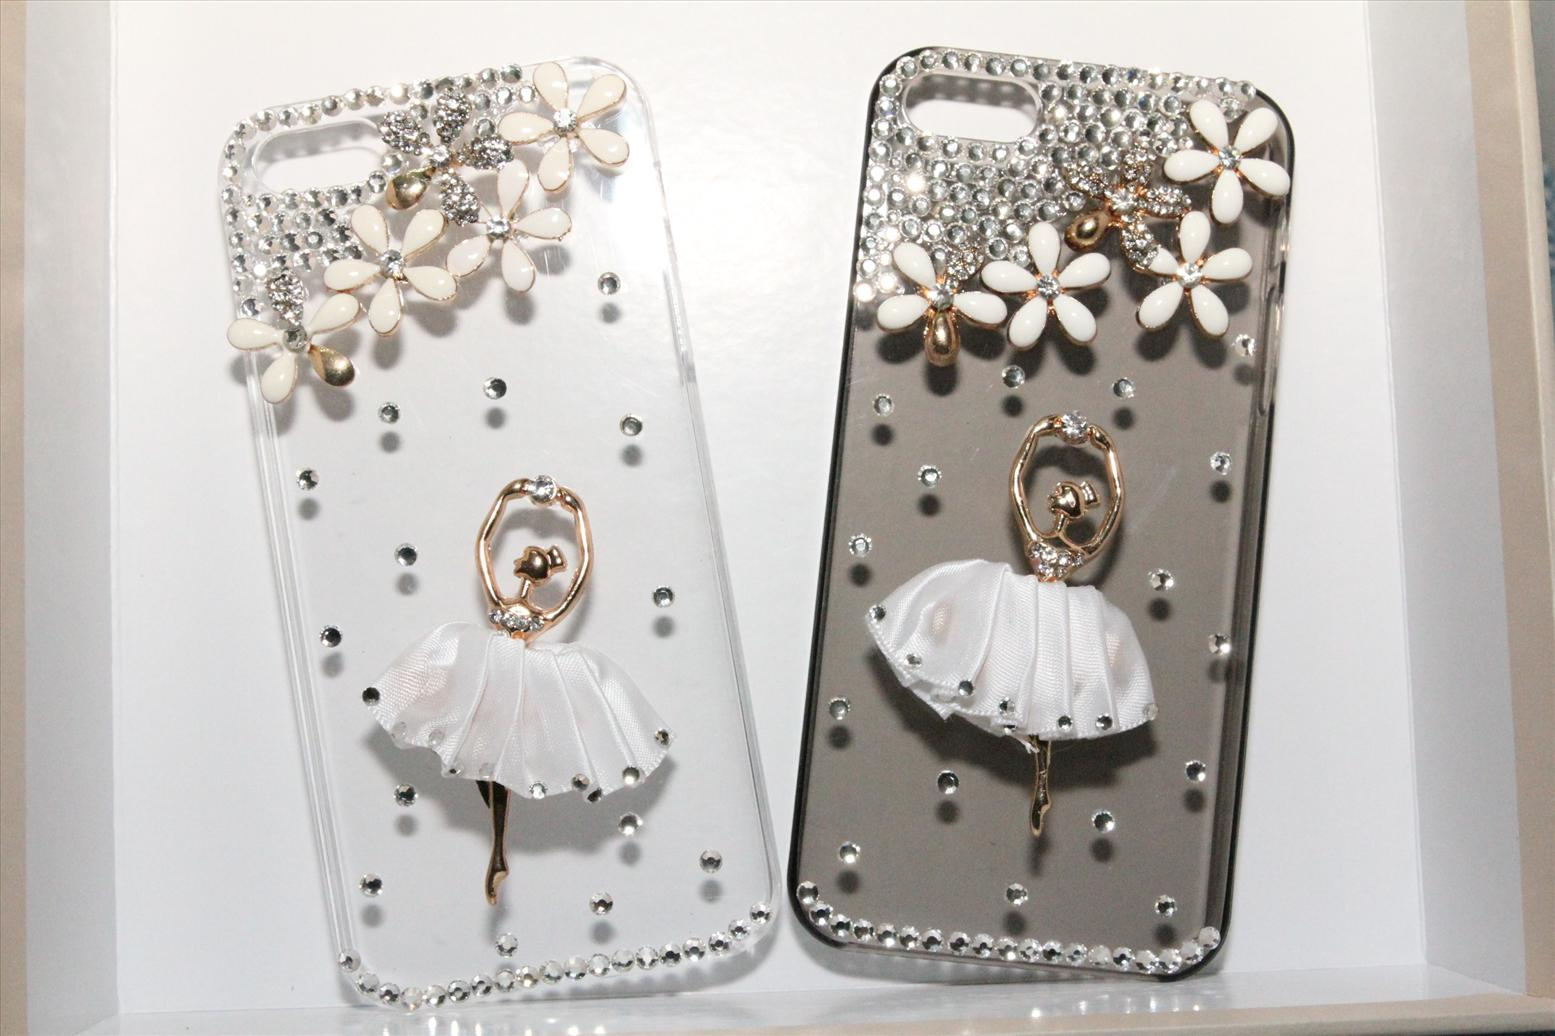 849ea001a6b4 Iphone 5   Iphone 4 Bling Bling case casing cover ballet girl. ‹ ›